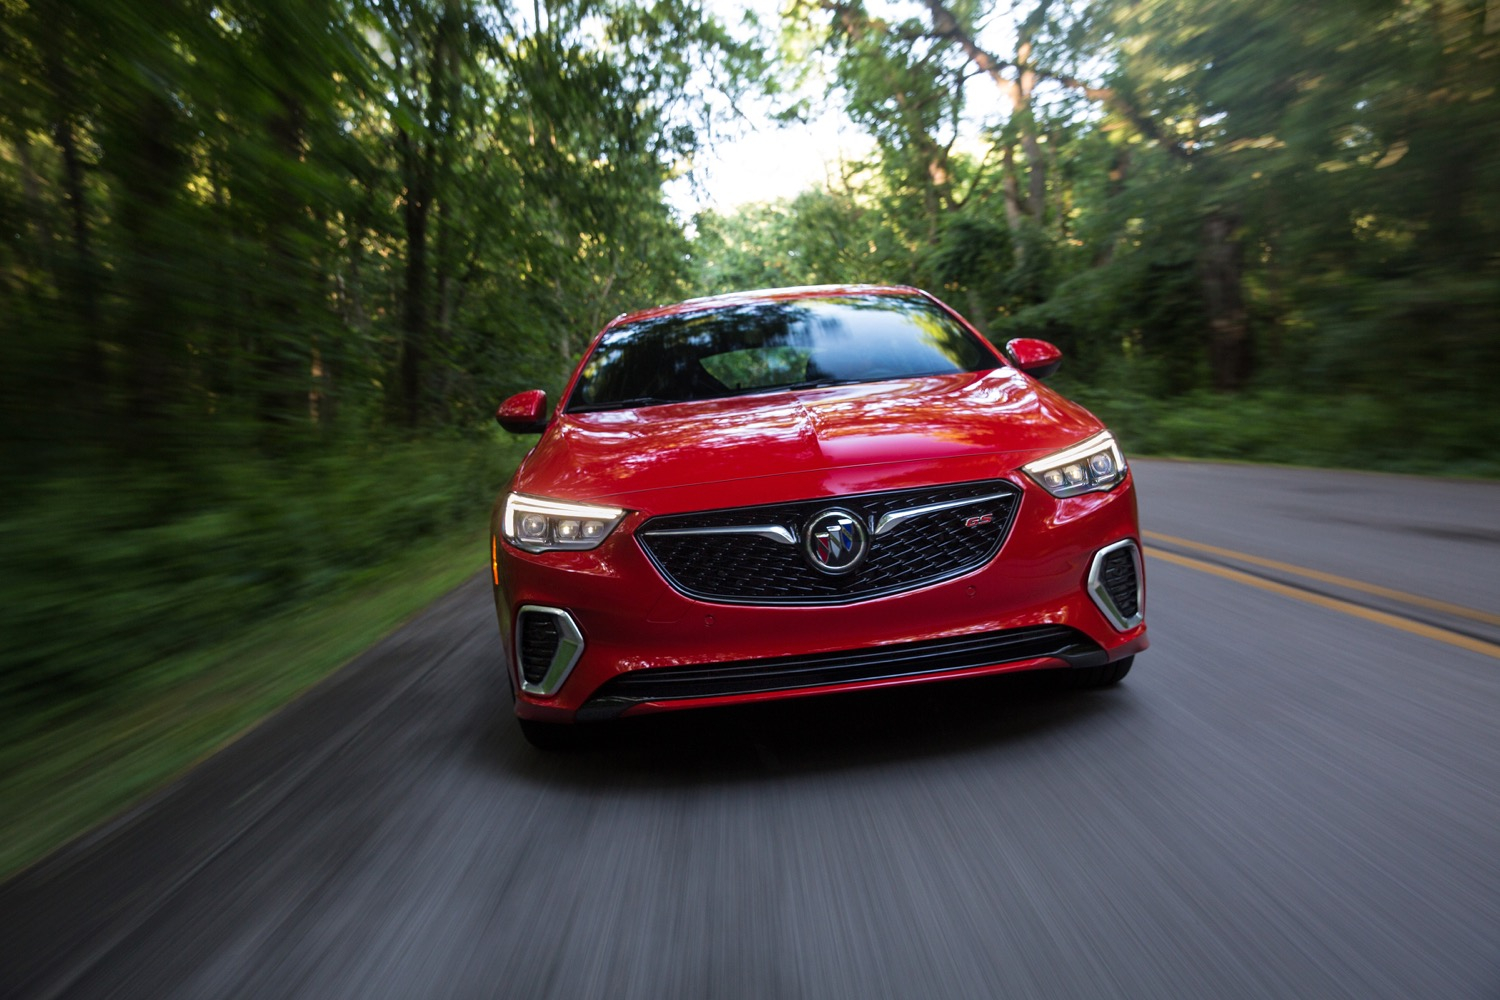 2018 Buick Regal Gs Revealed With V6 Engine | Gm Authority 2022 Buick Regal Gs Lease, Engine, Owners Manual